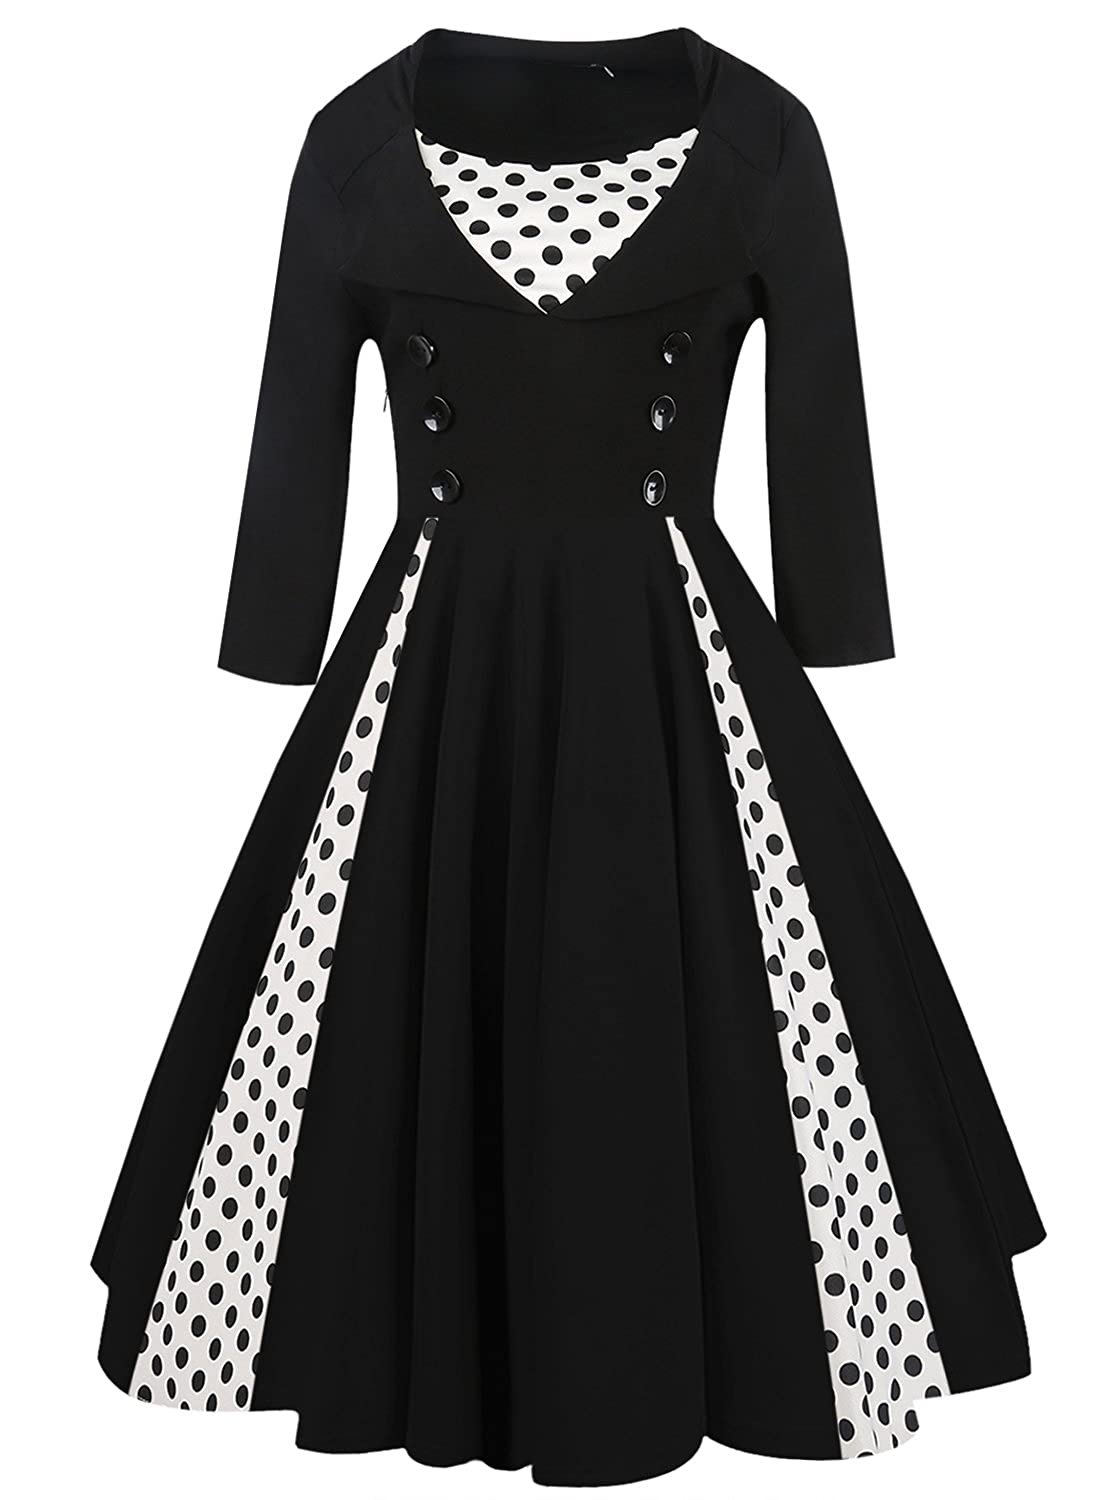 Oxiuly Womens Vintage Polka Dot Retro Half Sleeve 1950S Vintage Cocktail Casual Swing Dress OX202 80%OFF